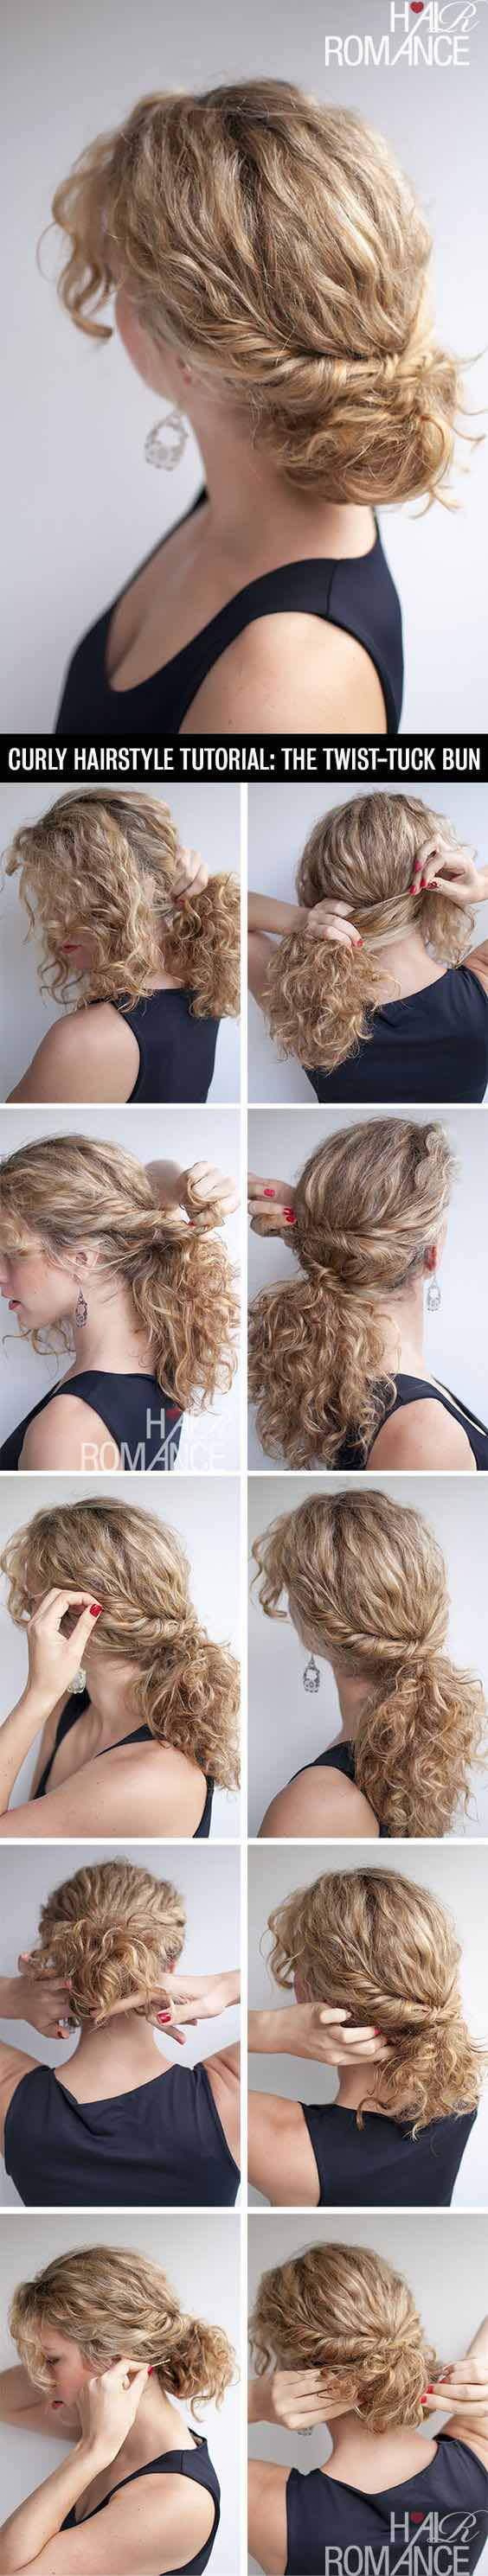 wedding-hairstyle-1-02152016-km